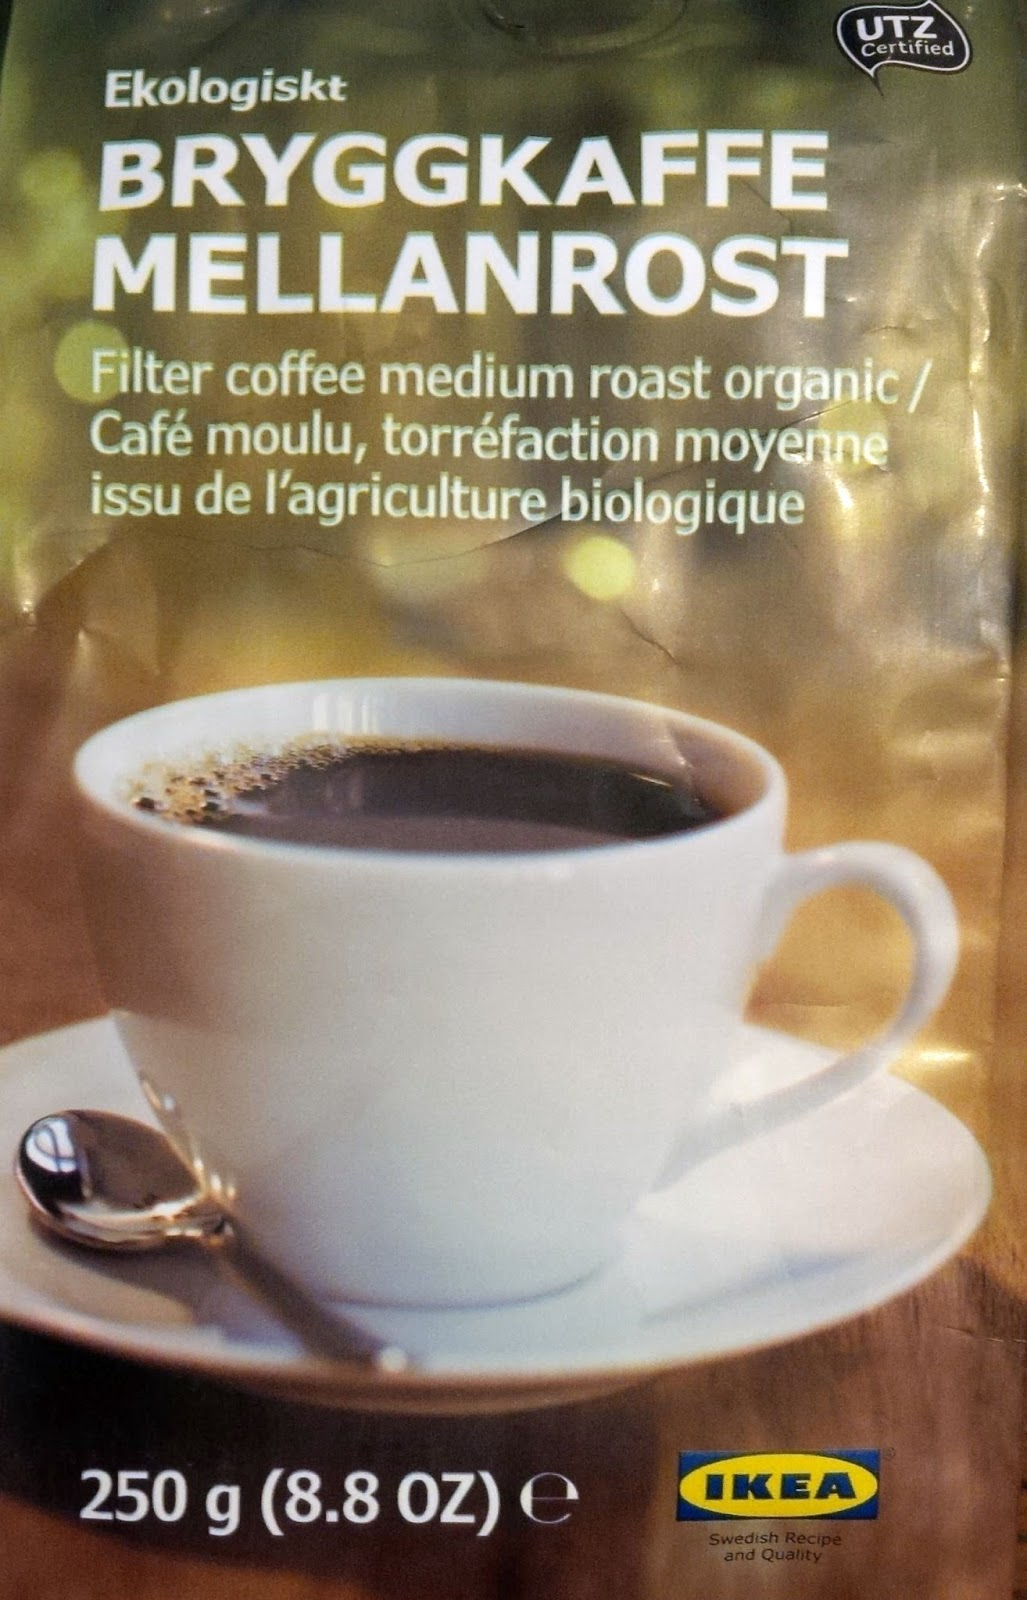 Smell the tea and coffee: Ikea Bryggkaffe Mellanrost (Filter coffee